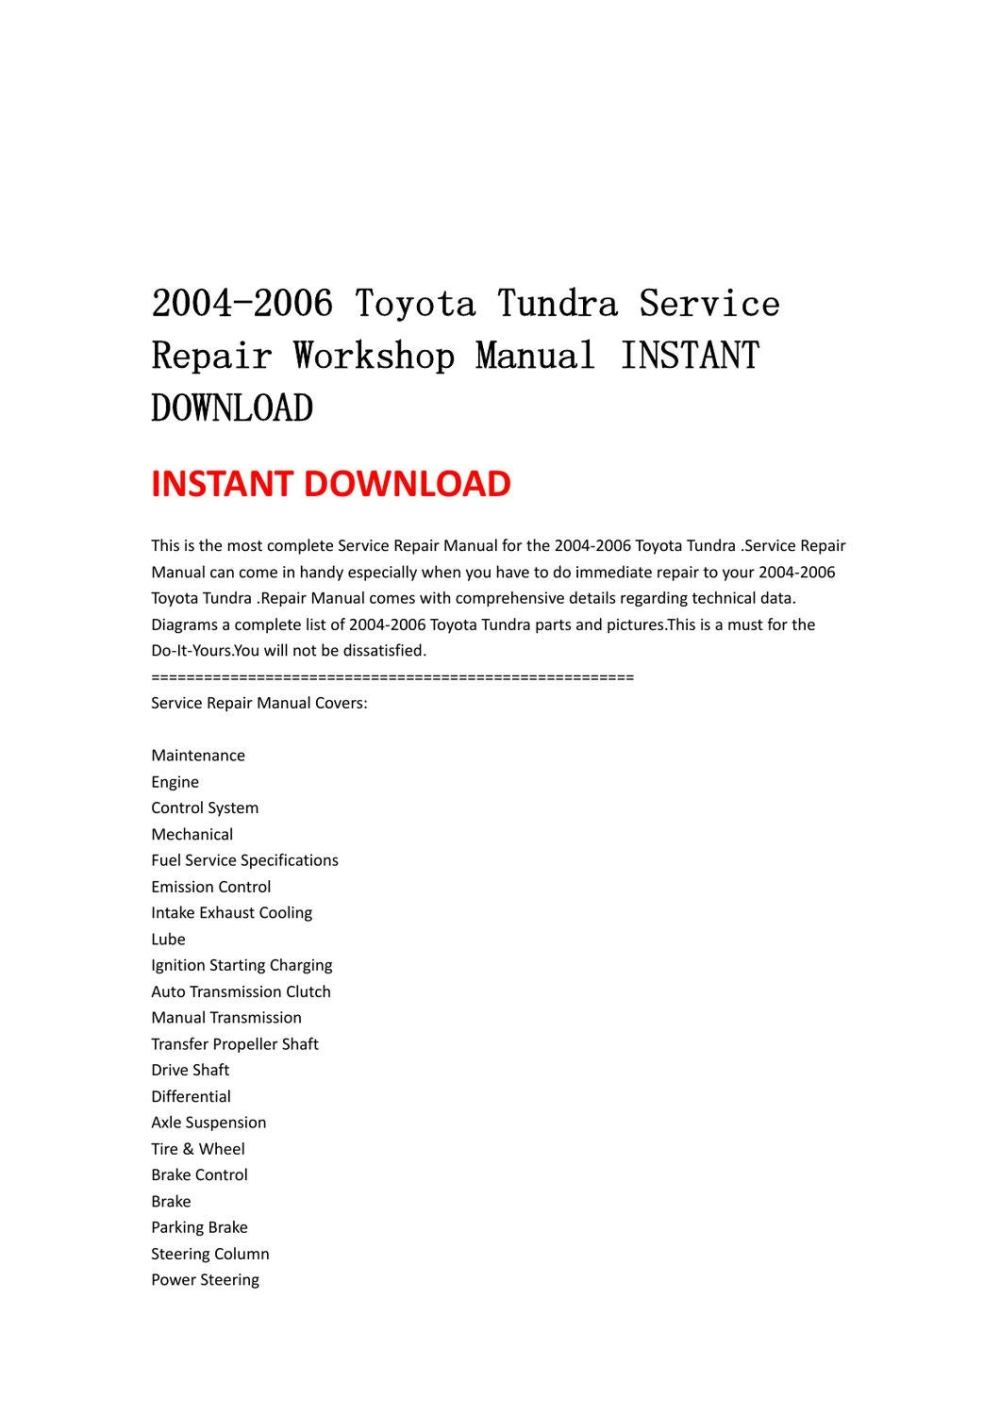 medium resolution of 1990 toyota supra service repair workshop manual instant download by chen wei issuu